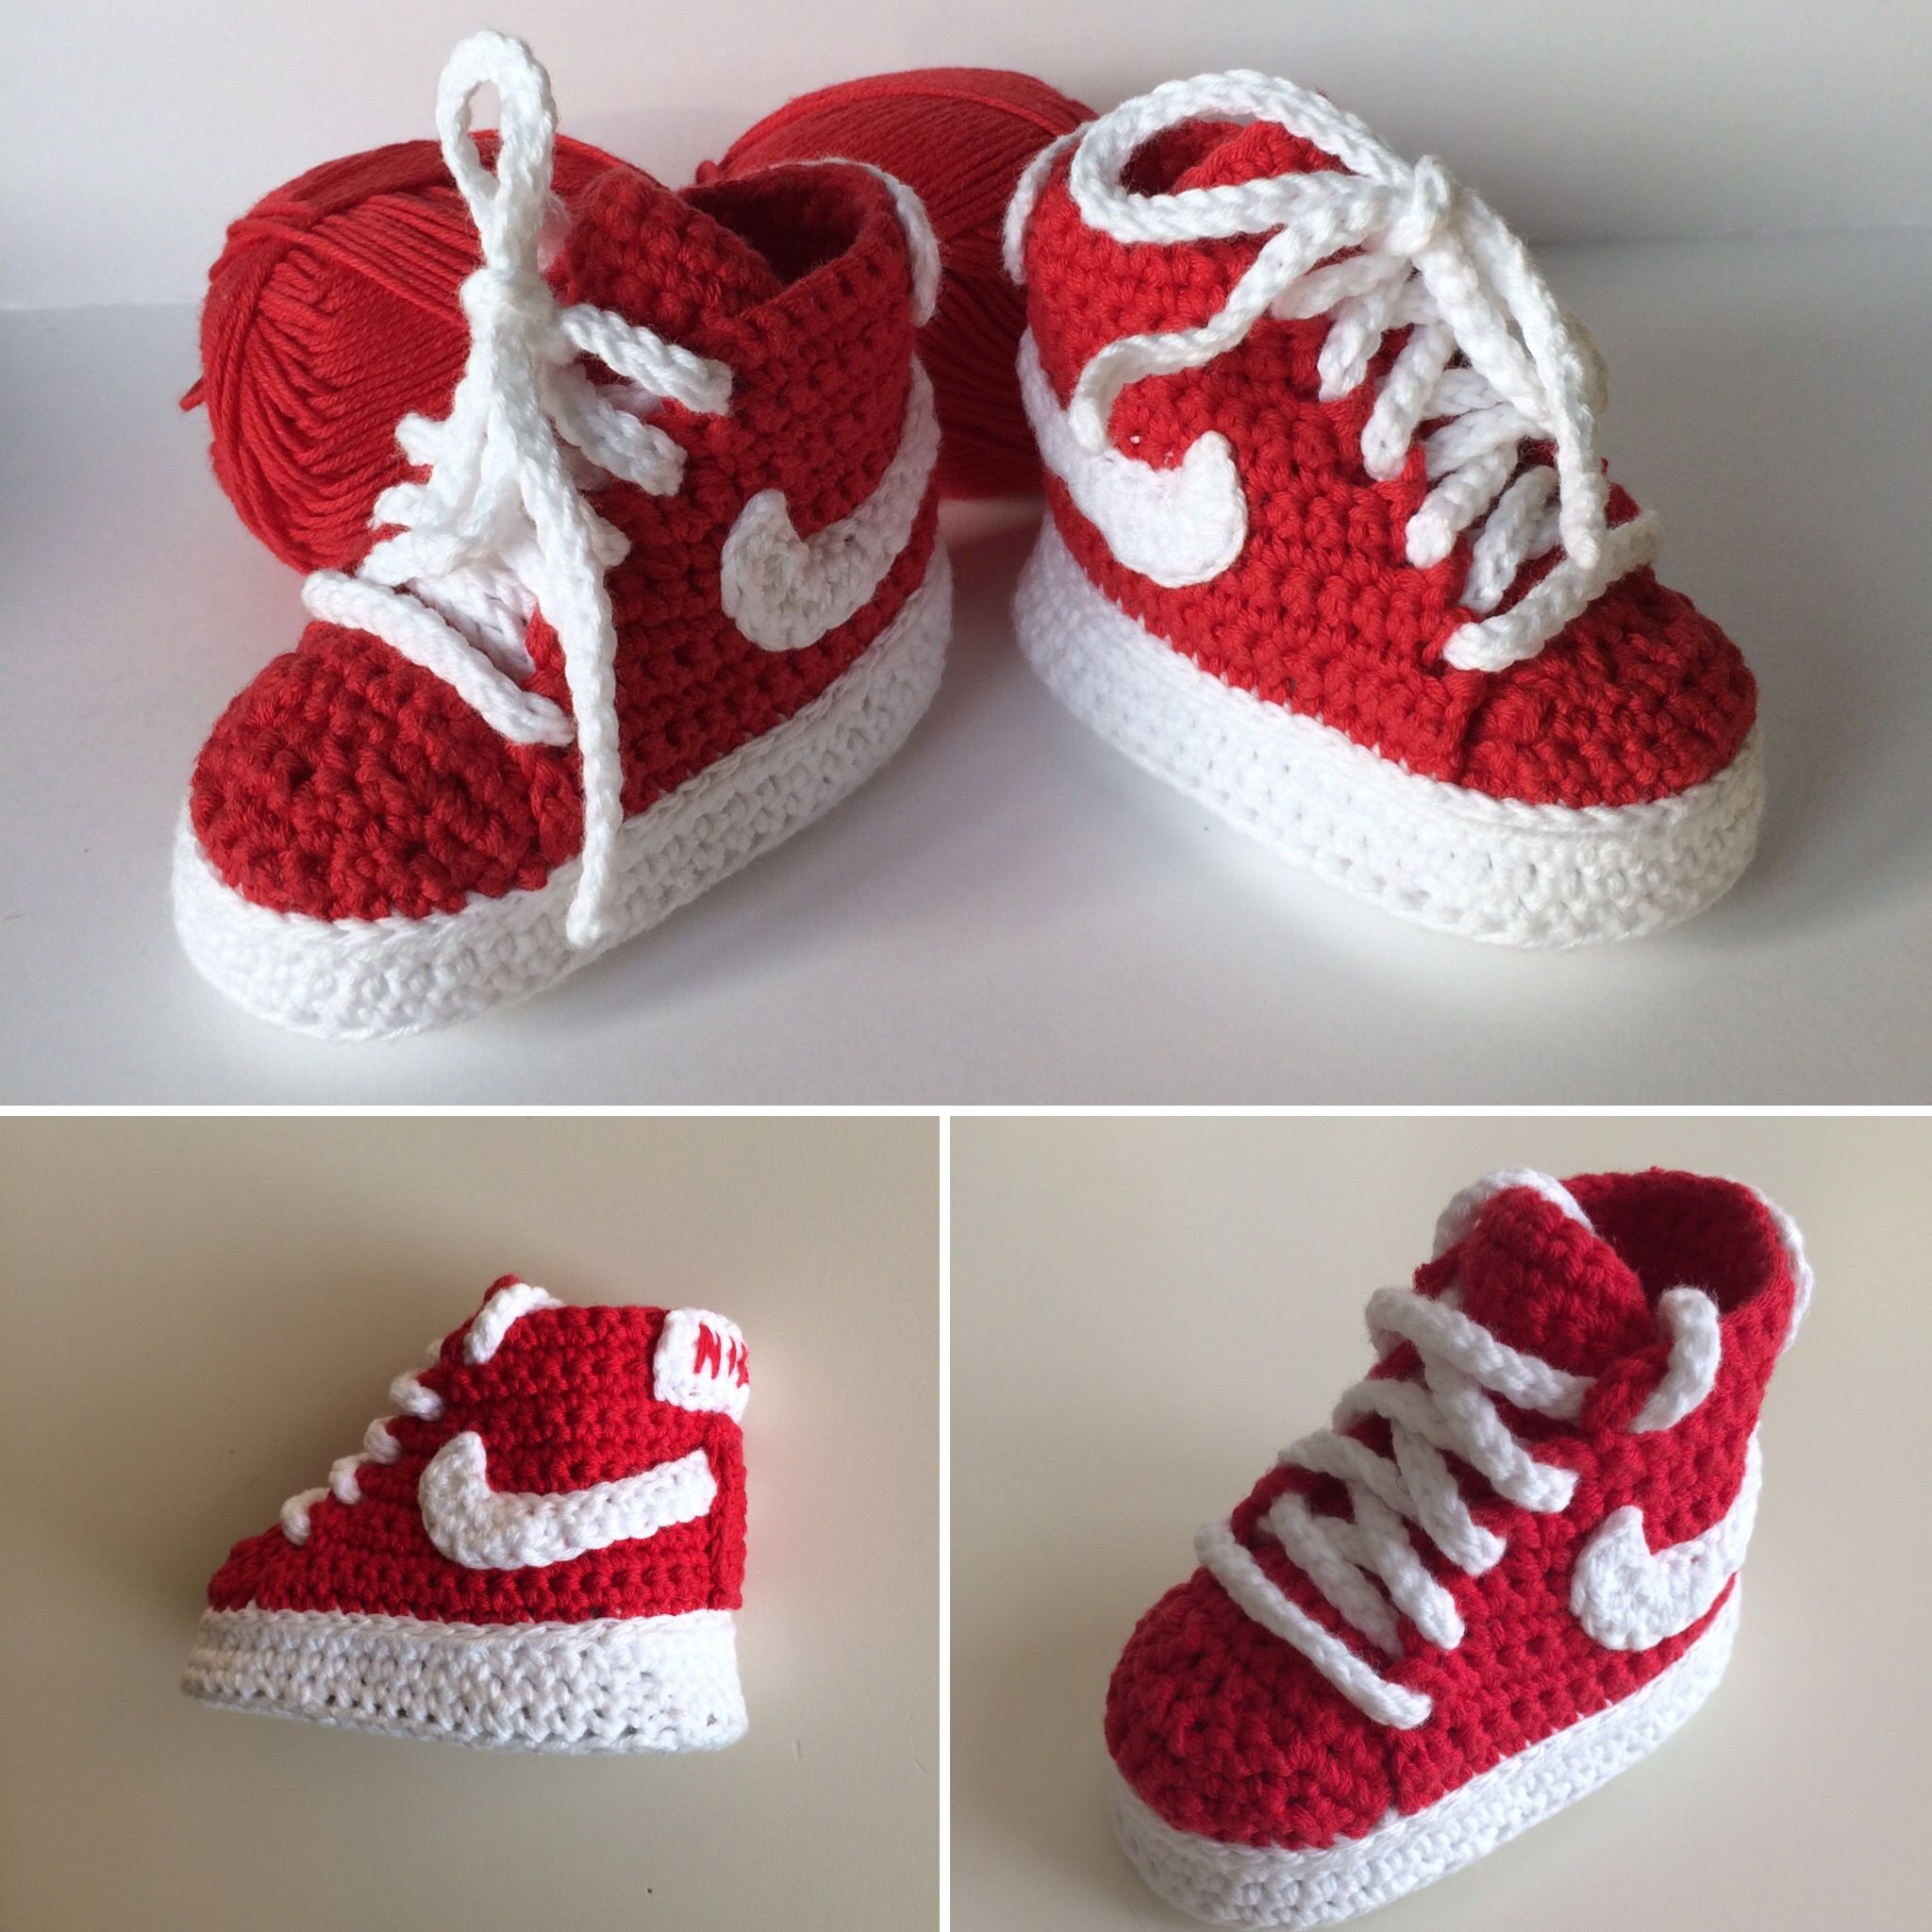 Crochet baby booties-Nike style | zapatitos | Pinterest | Crocheted ...